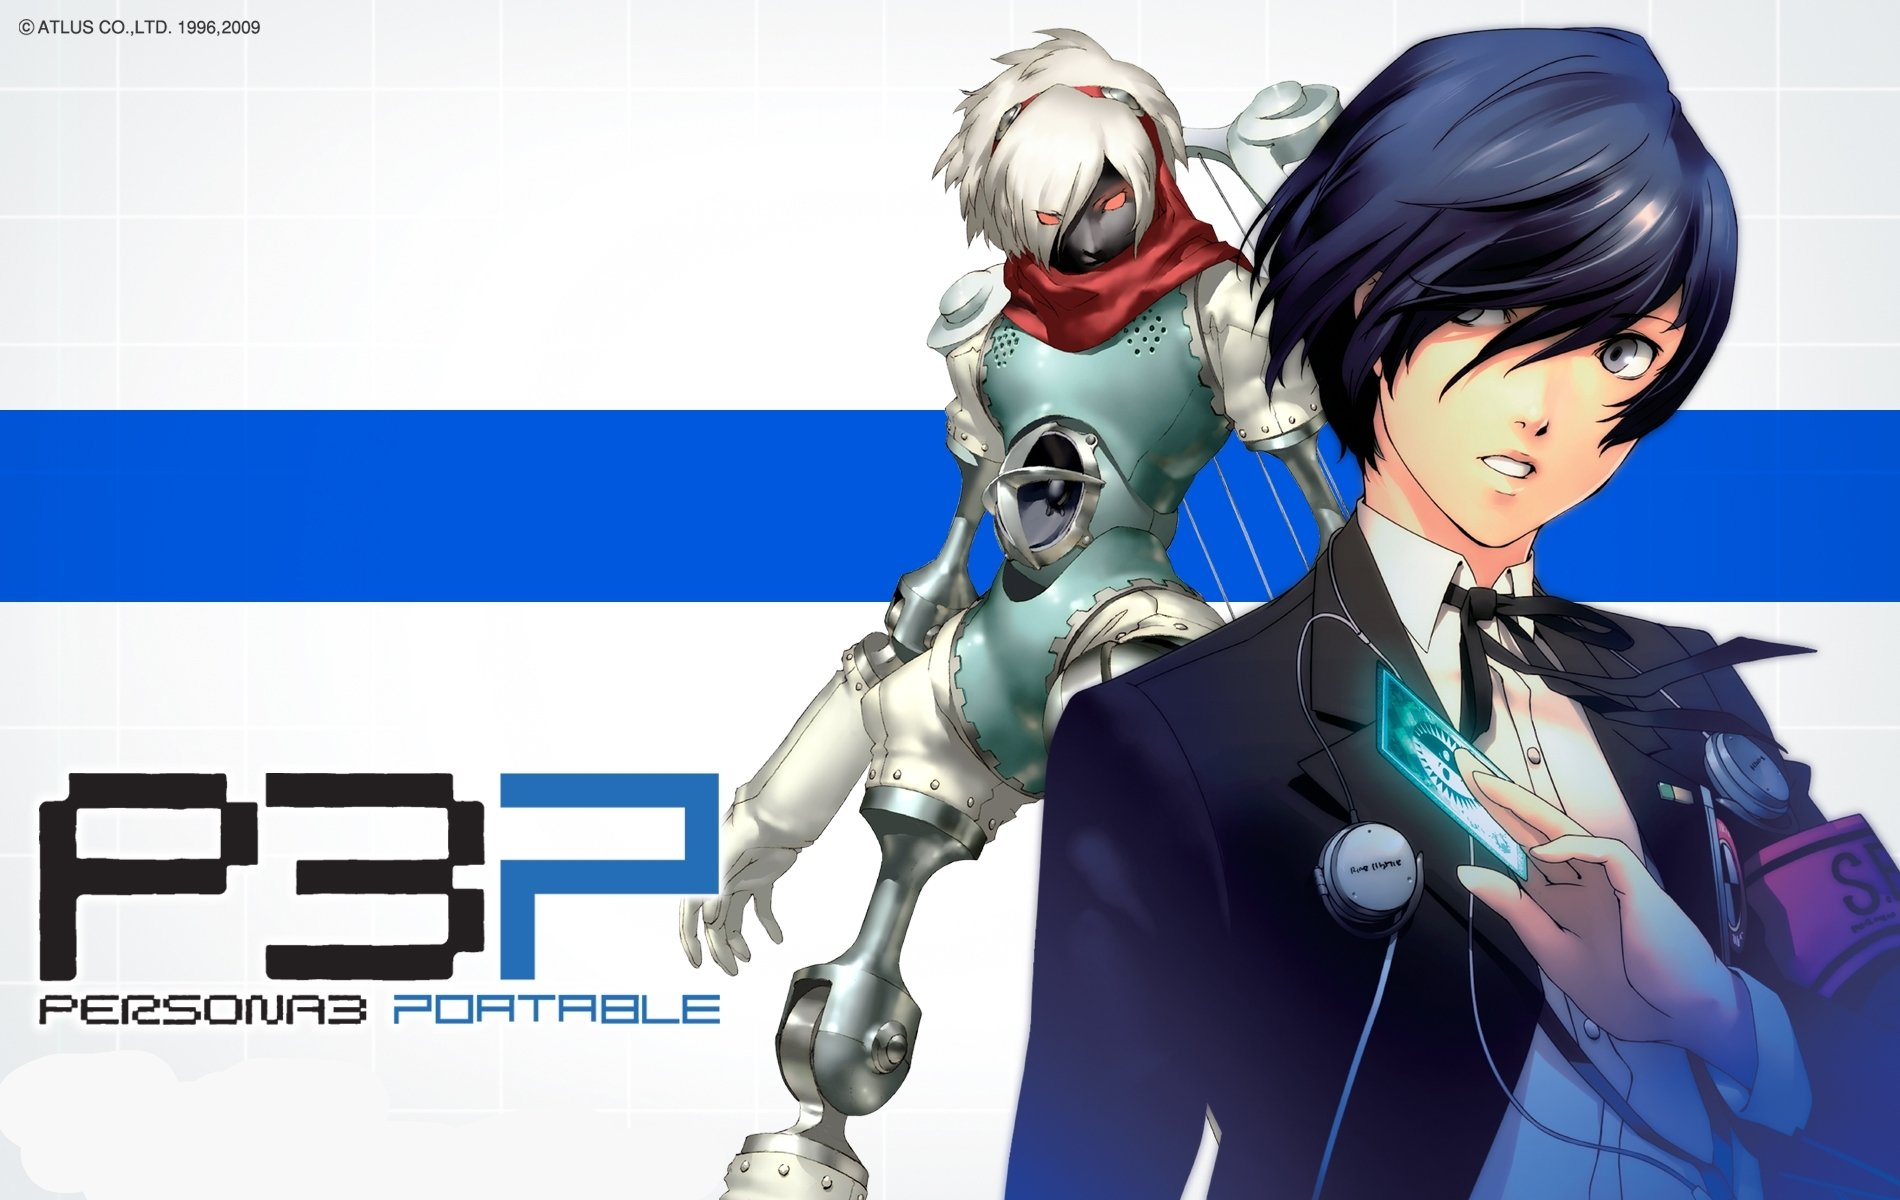 Persona 3 iphone 5 wallpaper - Hd Wallpaper Background Id 302743 1900x1200 Video Game Persona 3